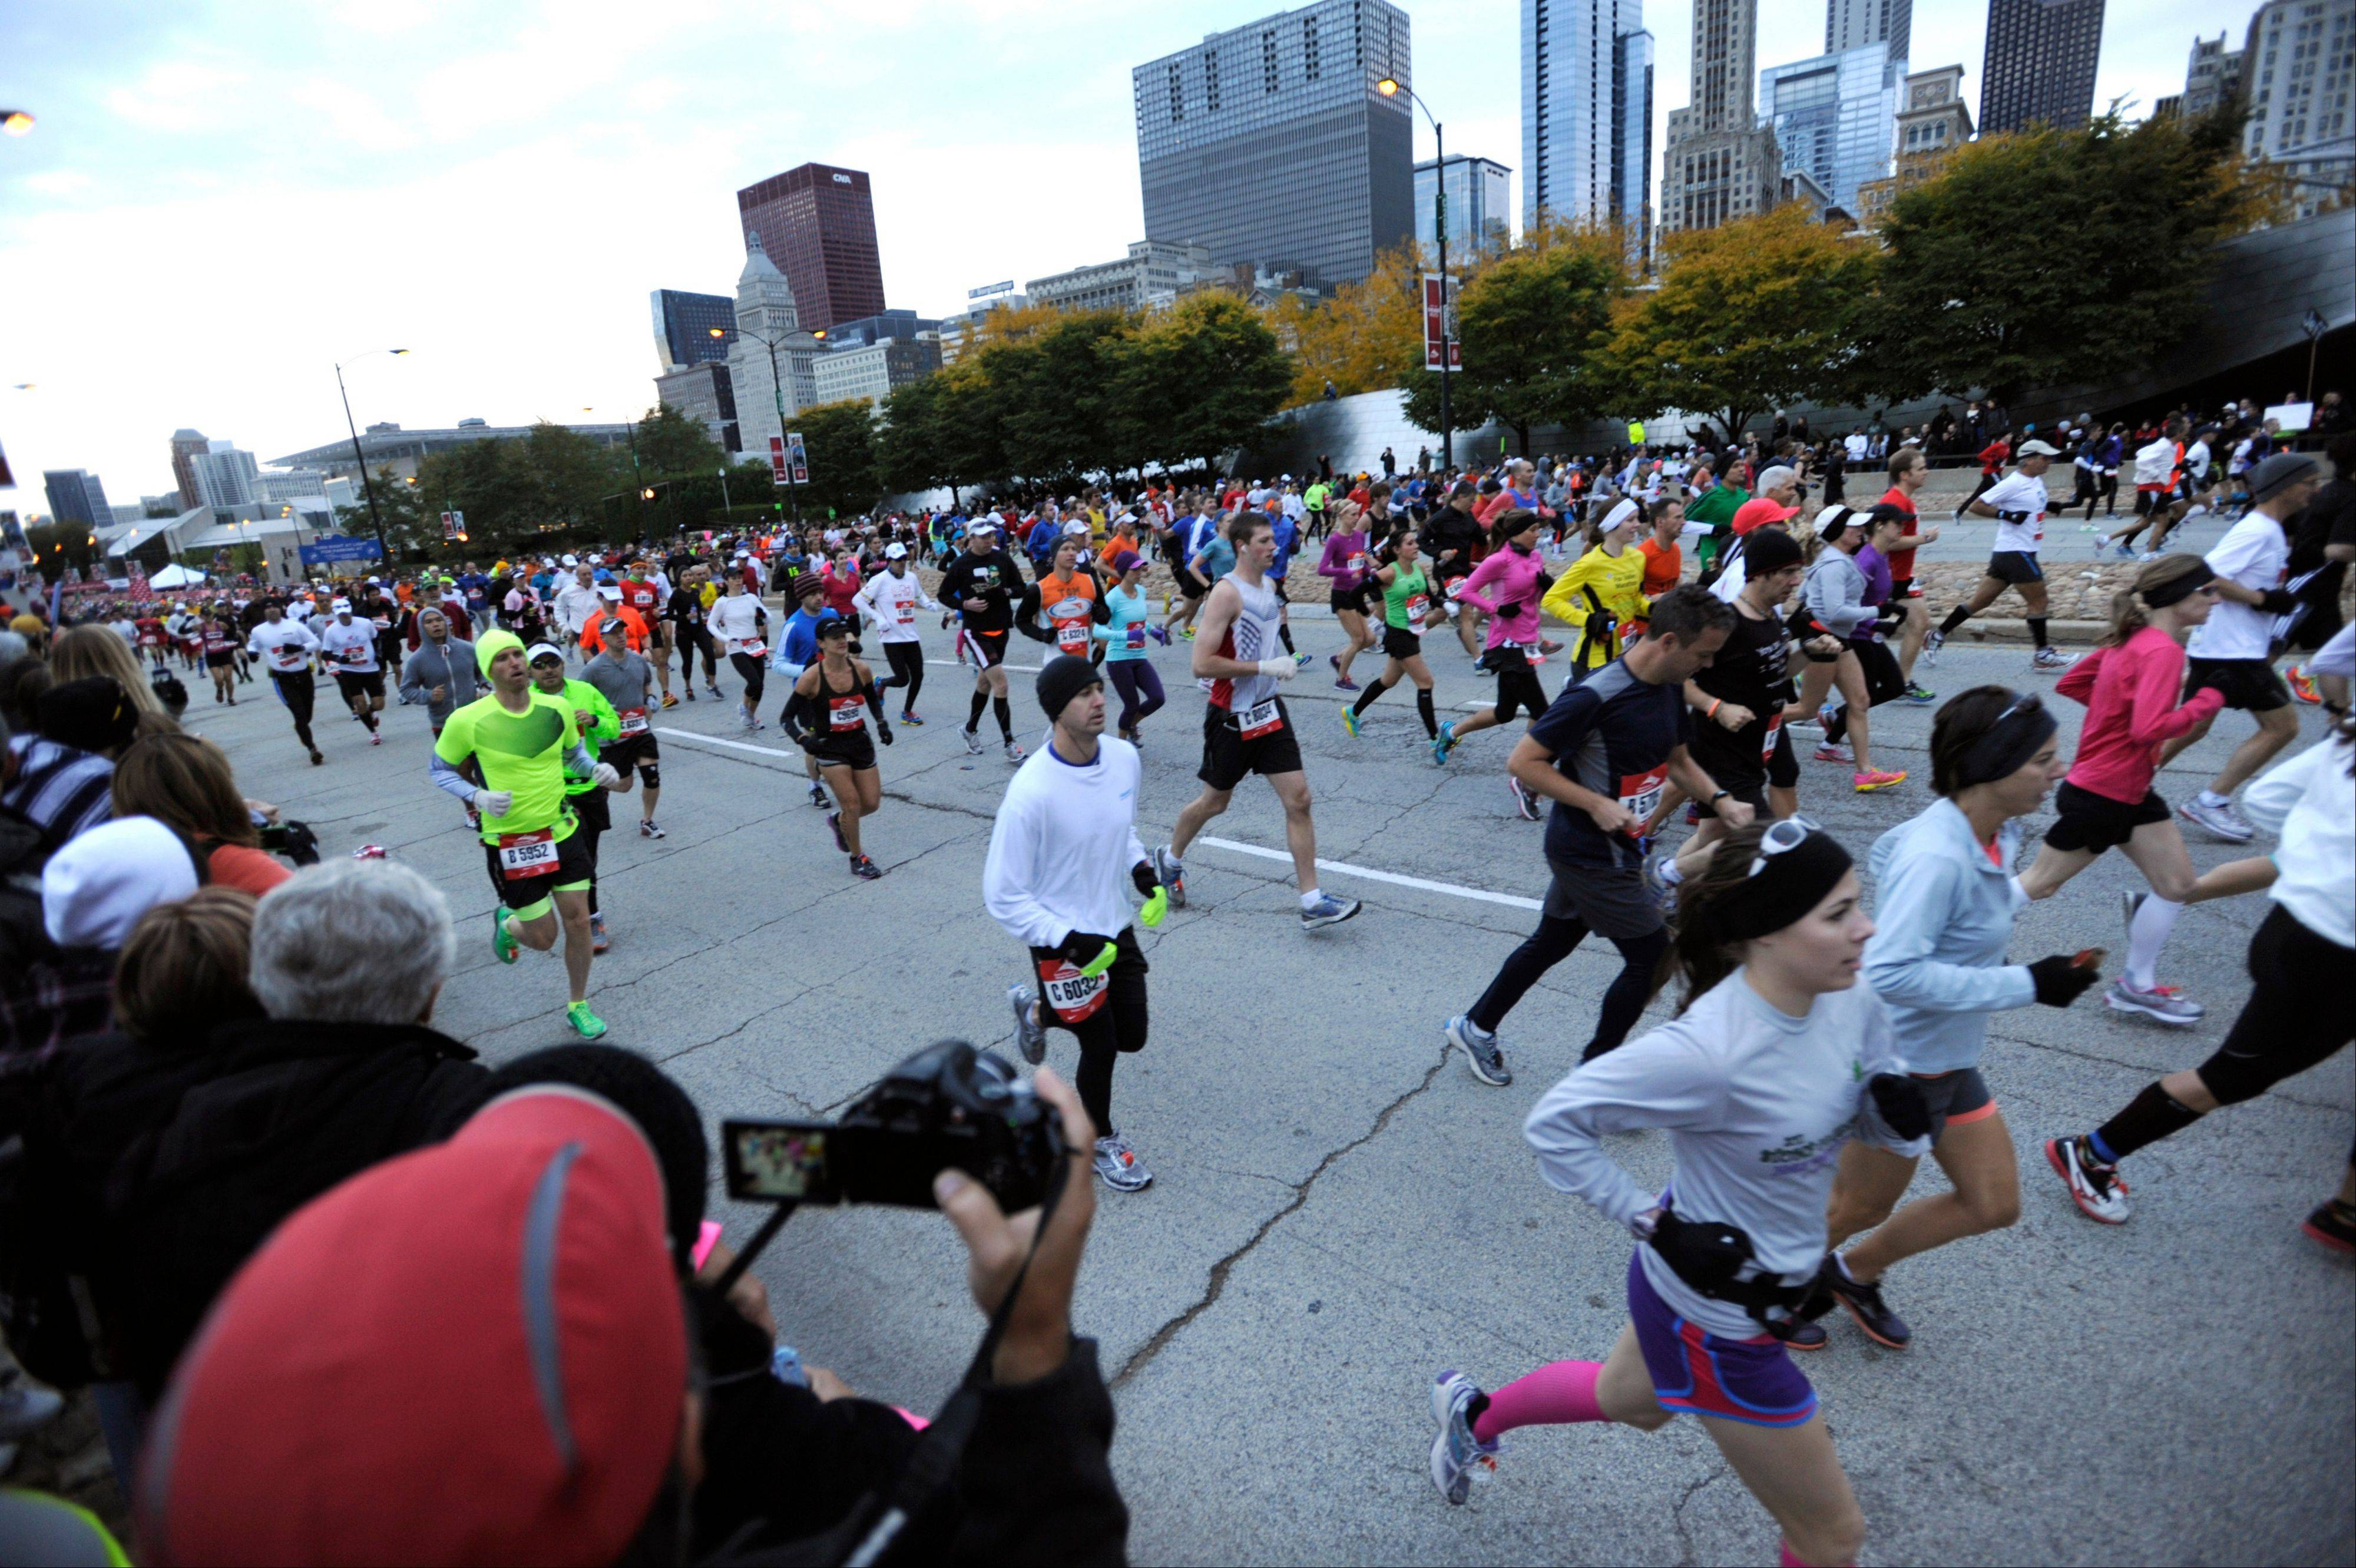 Fences are going up, streets are closing down and trim athletes are flying in from around the world ahead of Sunday's Chicago Marathon.